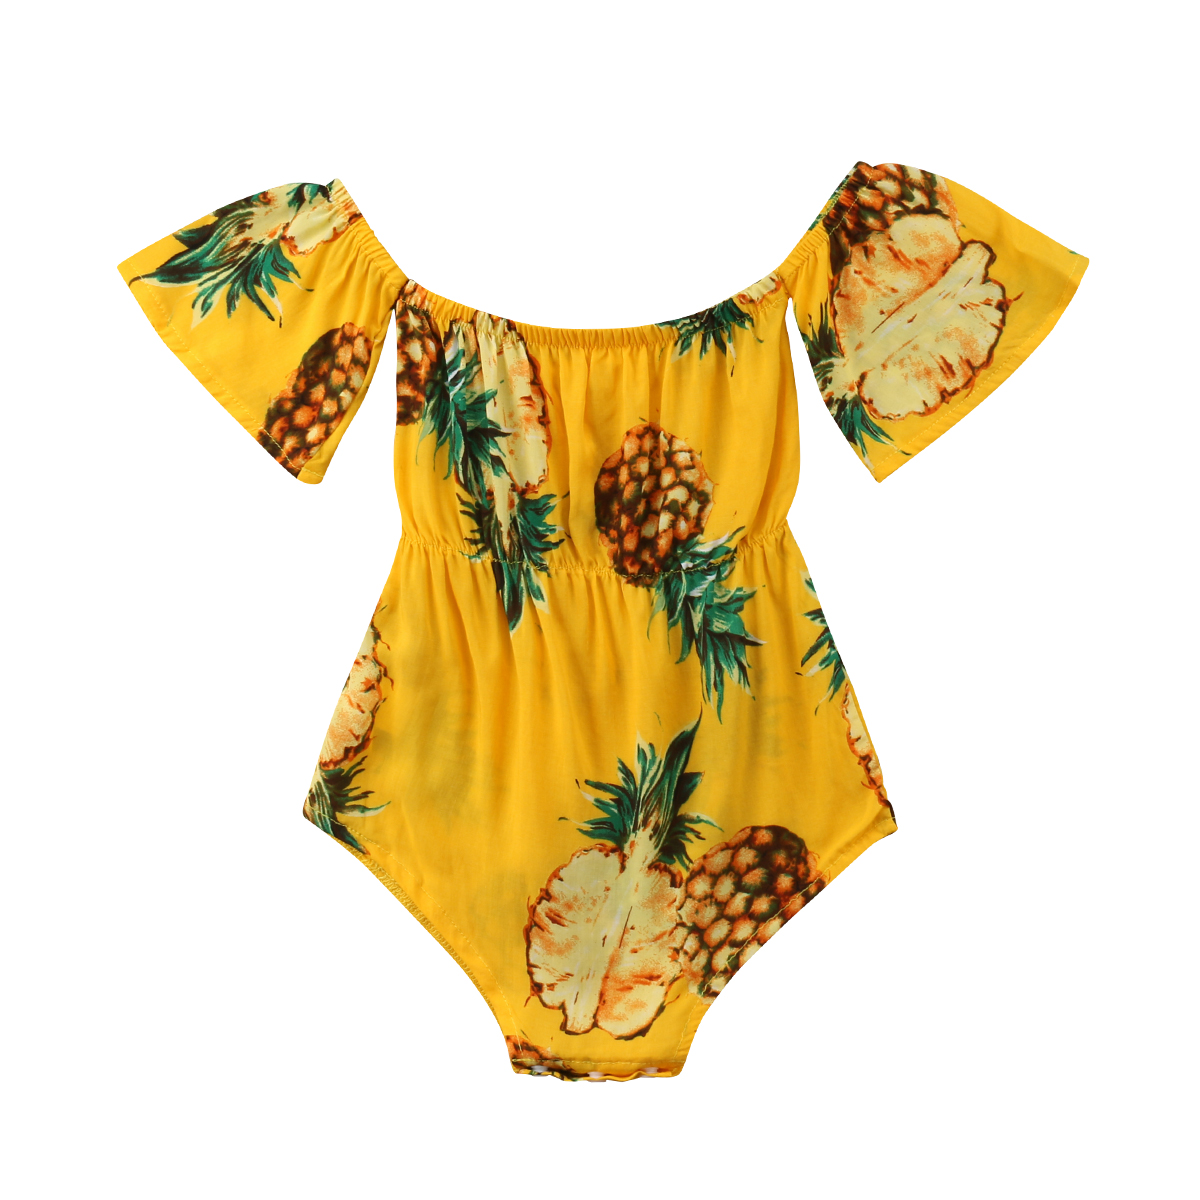 f2b81b856 Pudcoco 2019 Summer Newborn Kids Pineapple Clothing Toddler Baby Girl Boy  Off Shoulder Romper Jumpsuit Clothes